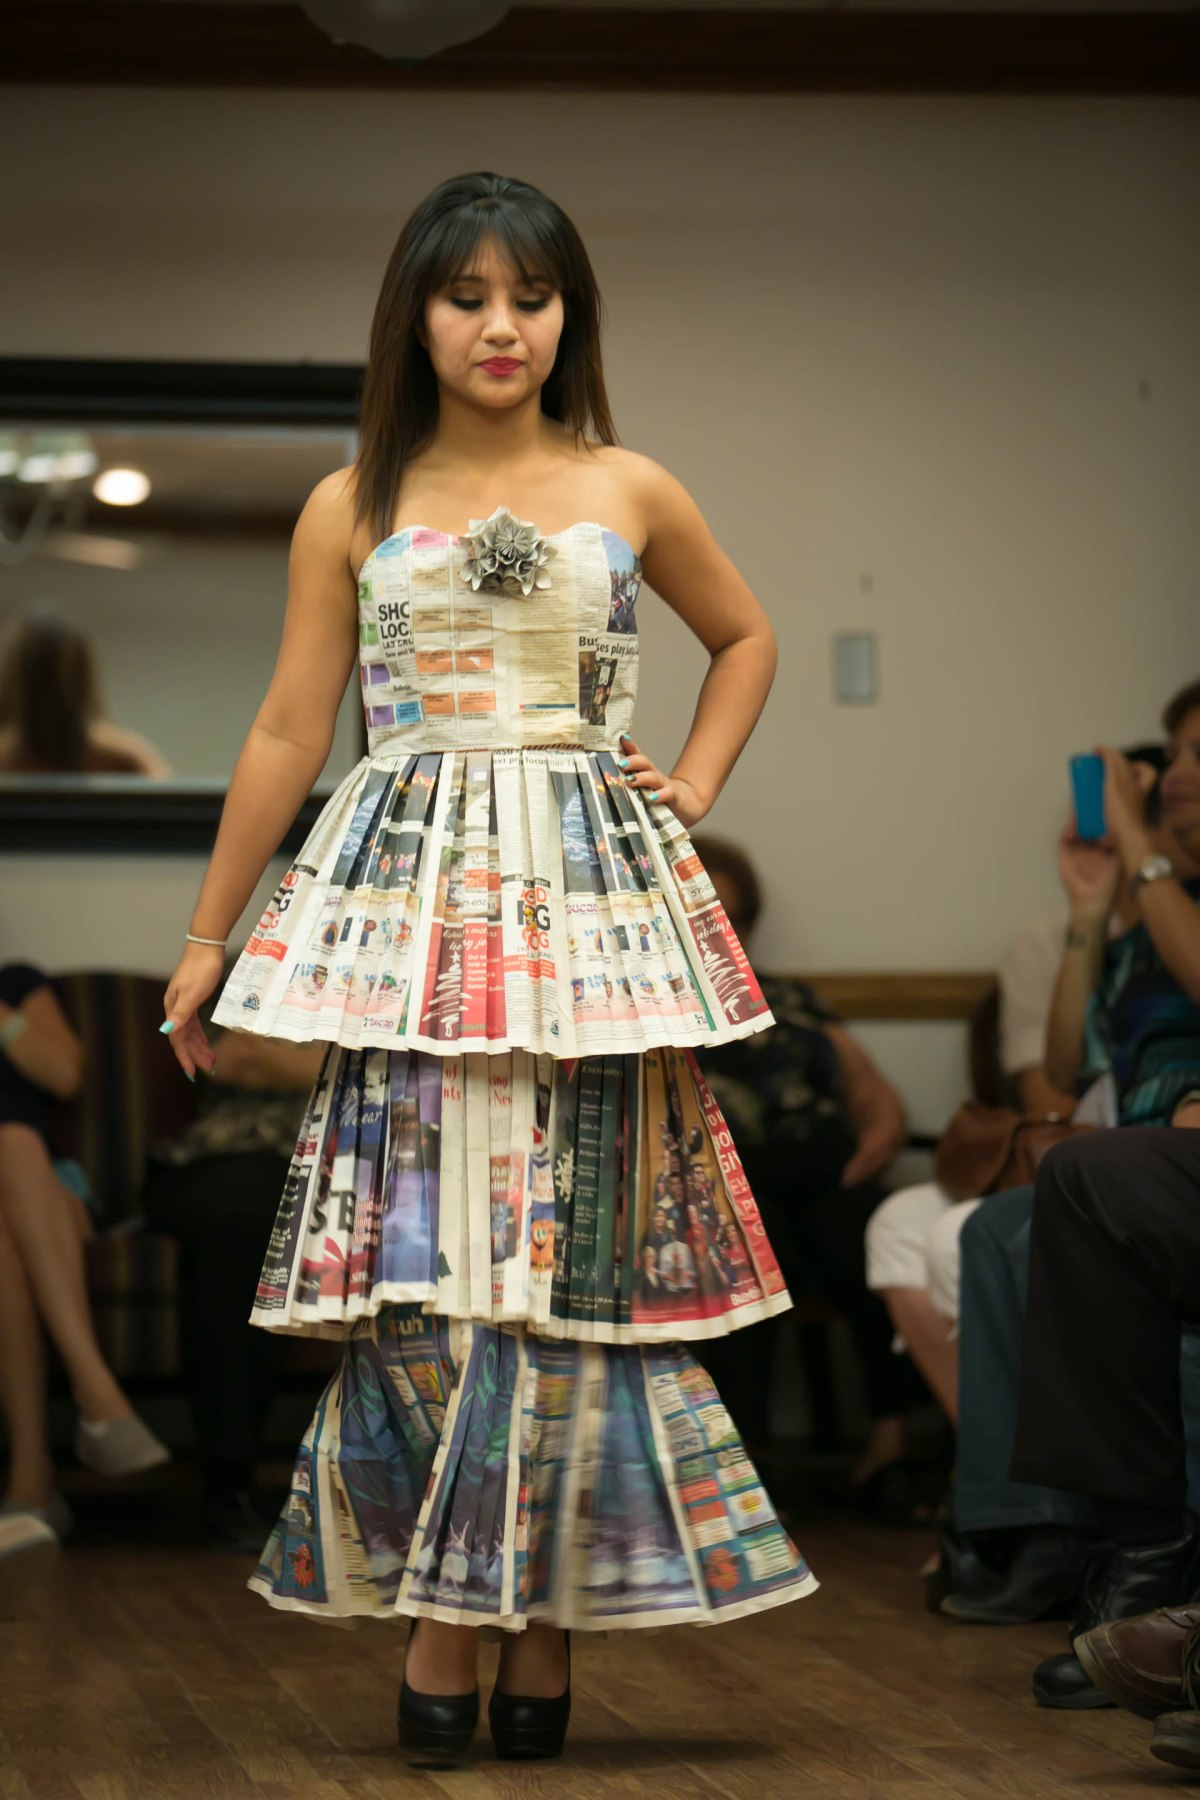 newspaper_dress